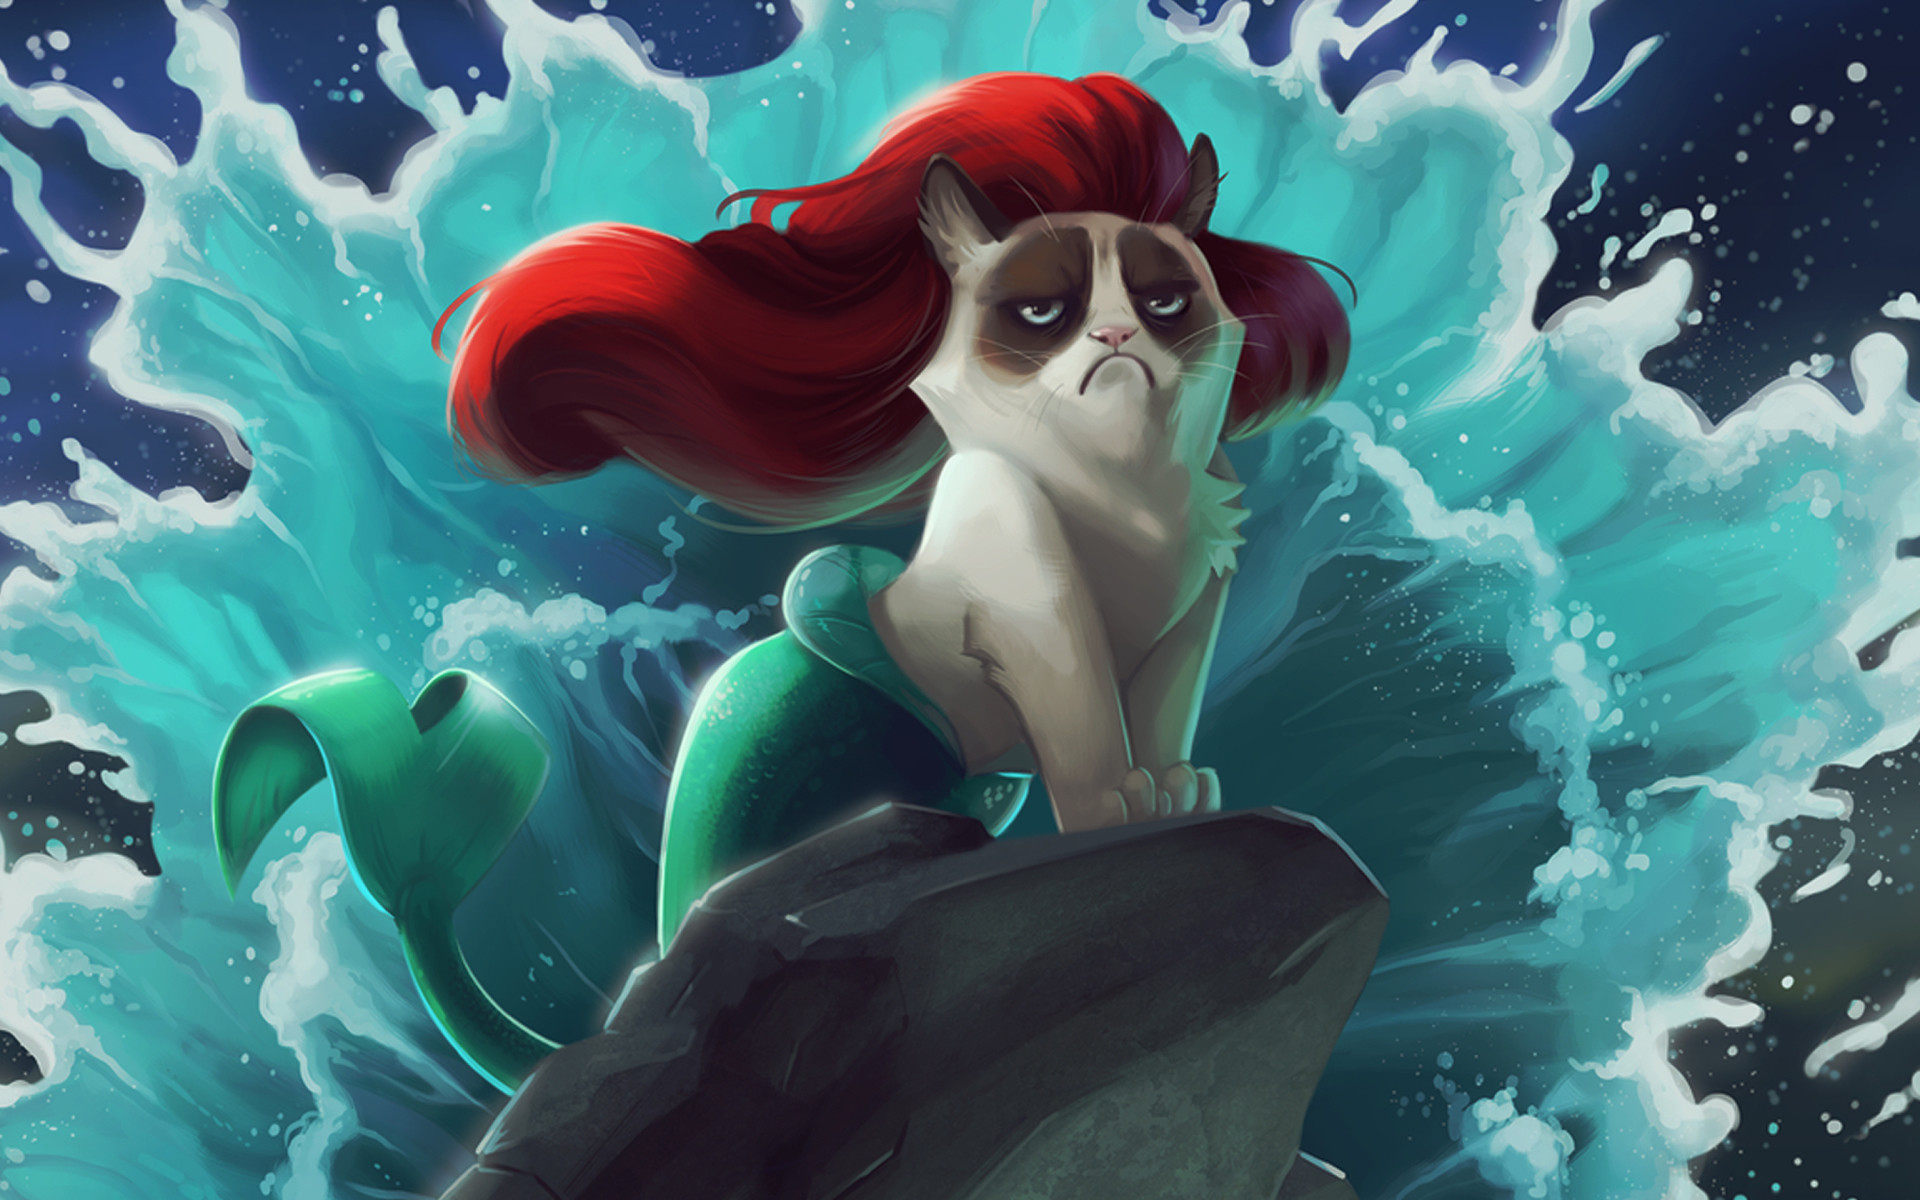 Mermaid Wallpaper Android Apps on Google Play 1920×1200 Mermaid Wallpaper  (41 Wallpapers)